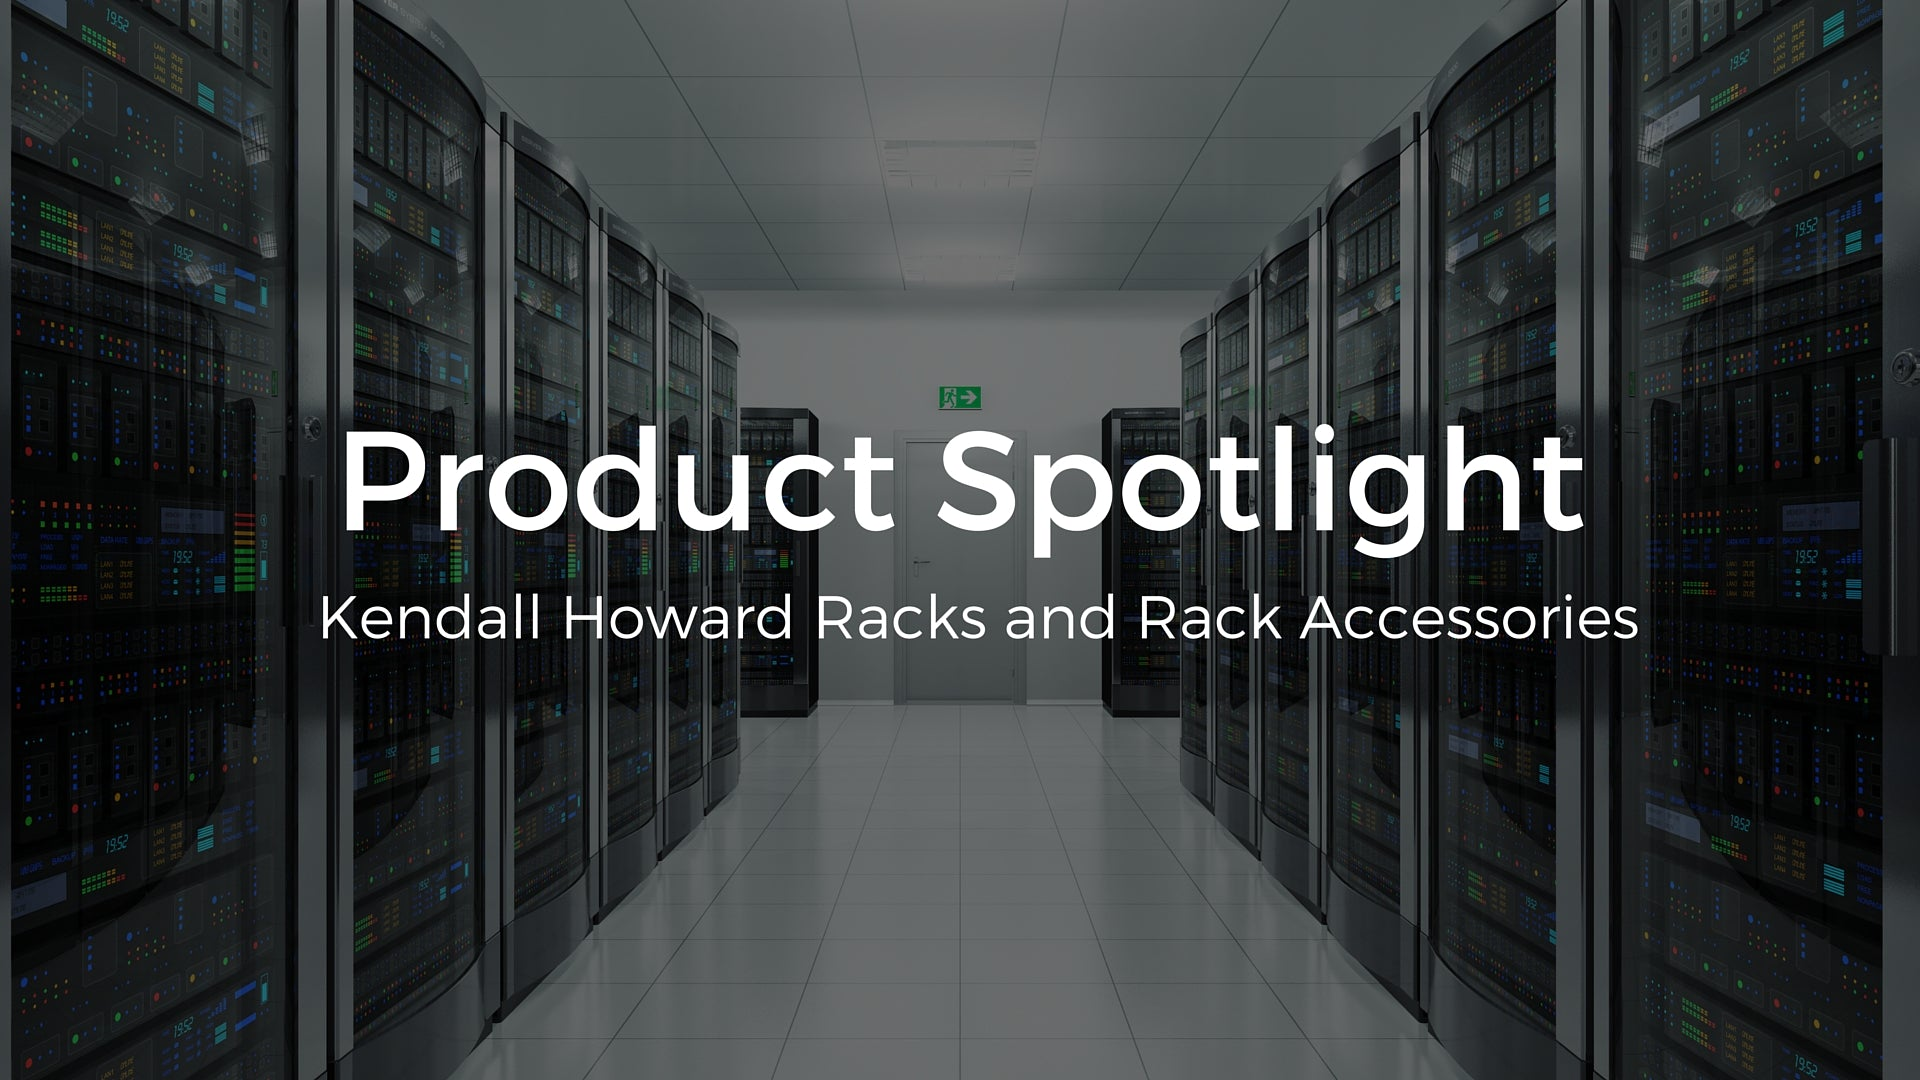 Product Spotlight Kendall Howard